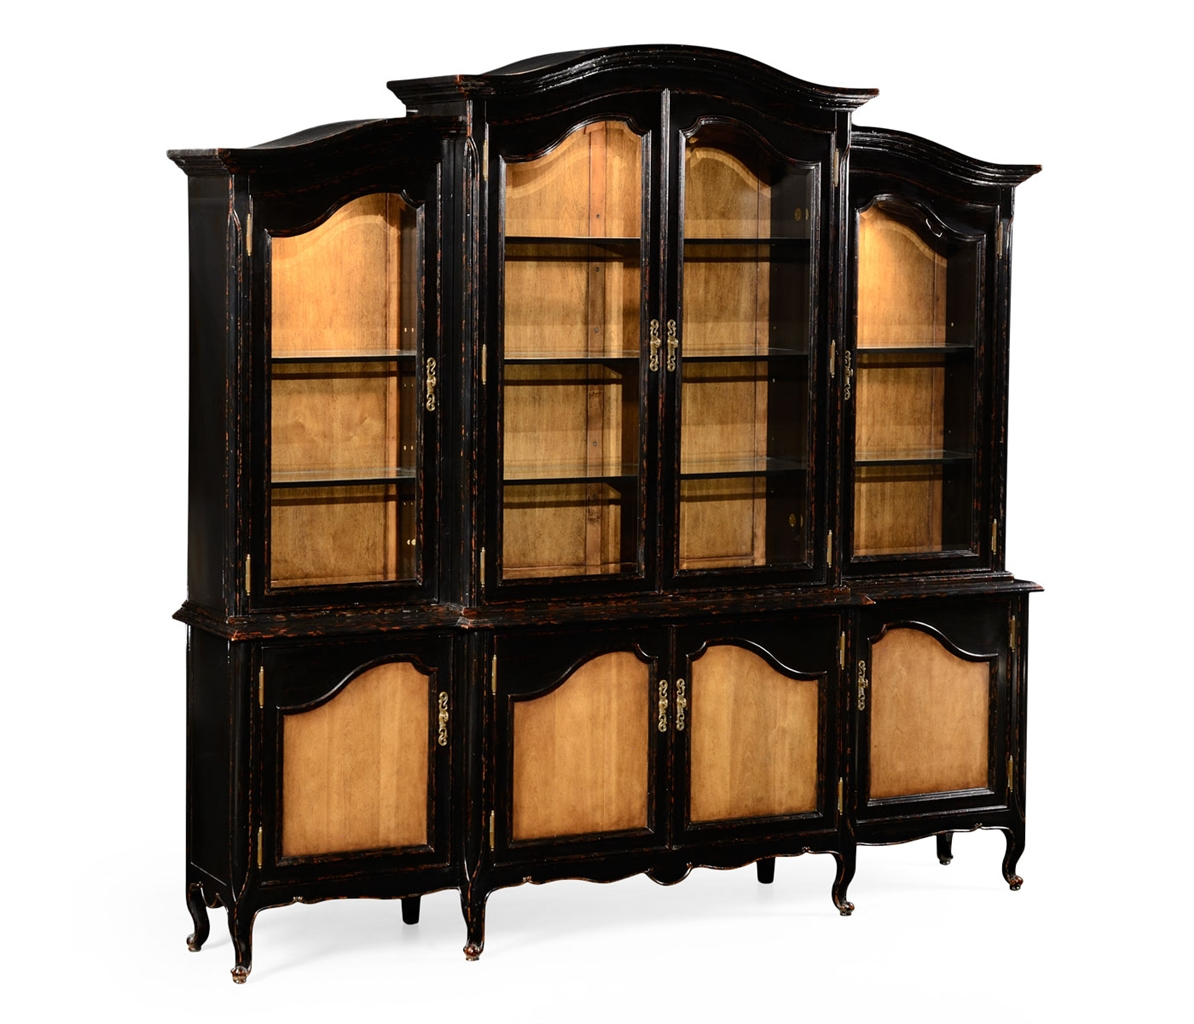 High End China Cabinets Display Cabinet French Country Furnishings Pjpg